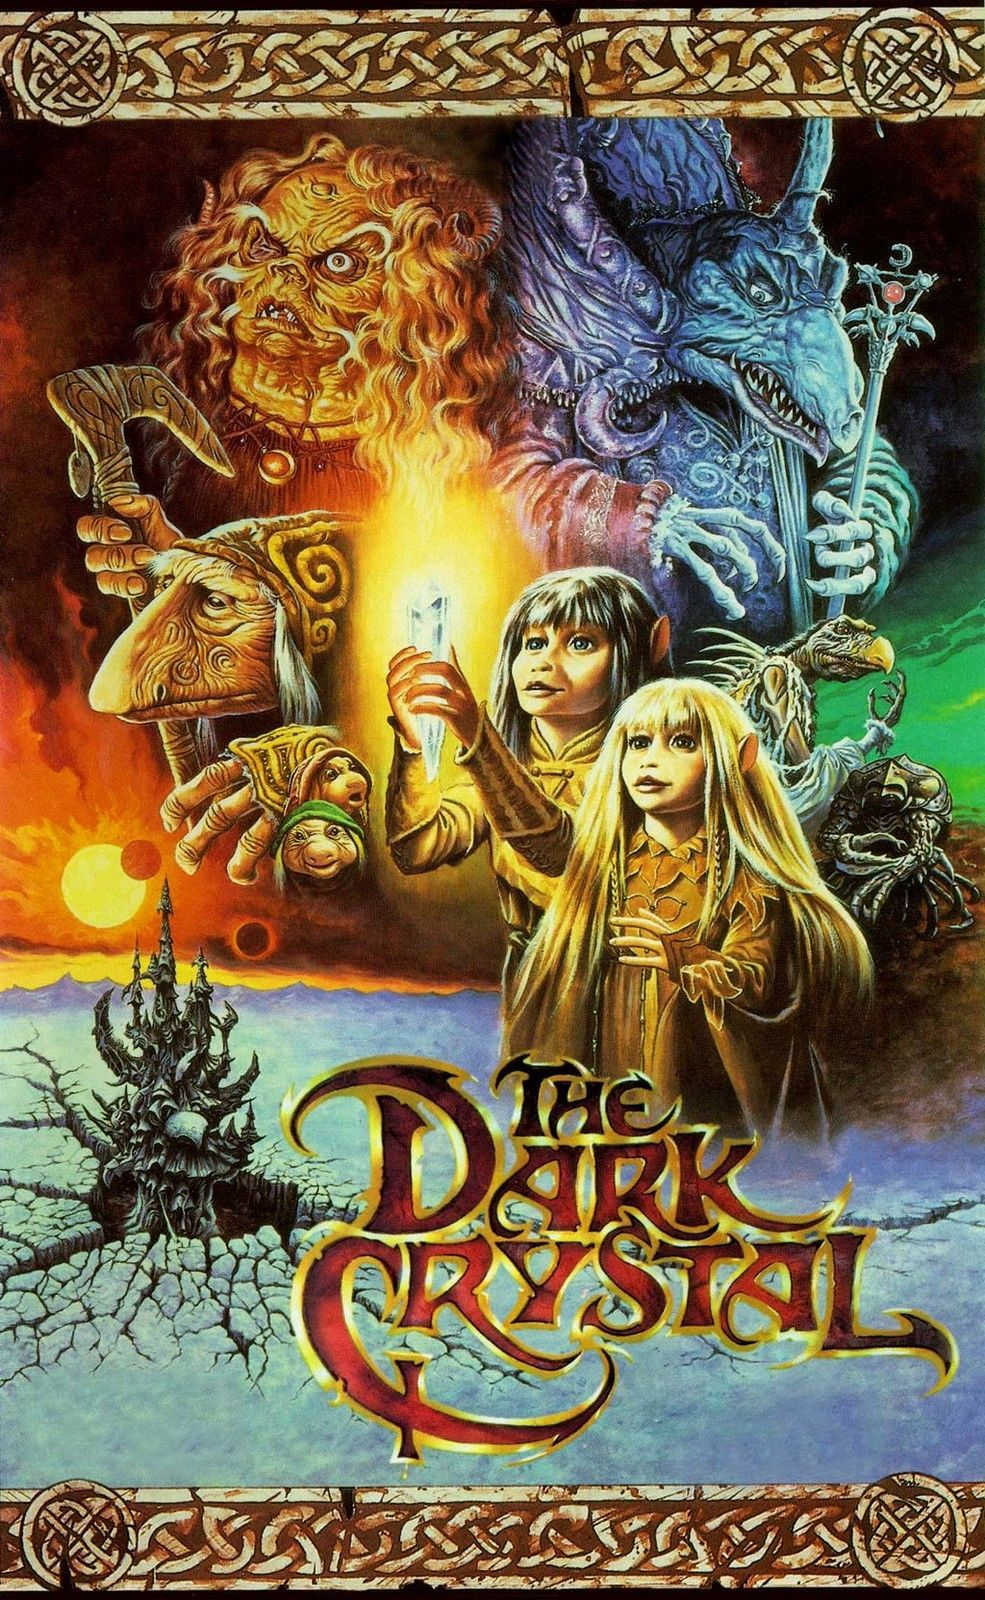 Dark Crystal Movie Poster 8X10 Fabric Block - Great 4 Embroidery And ...